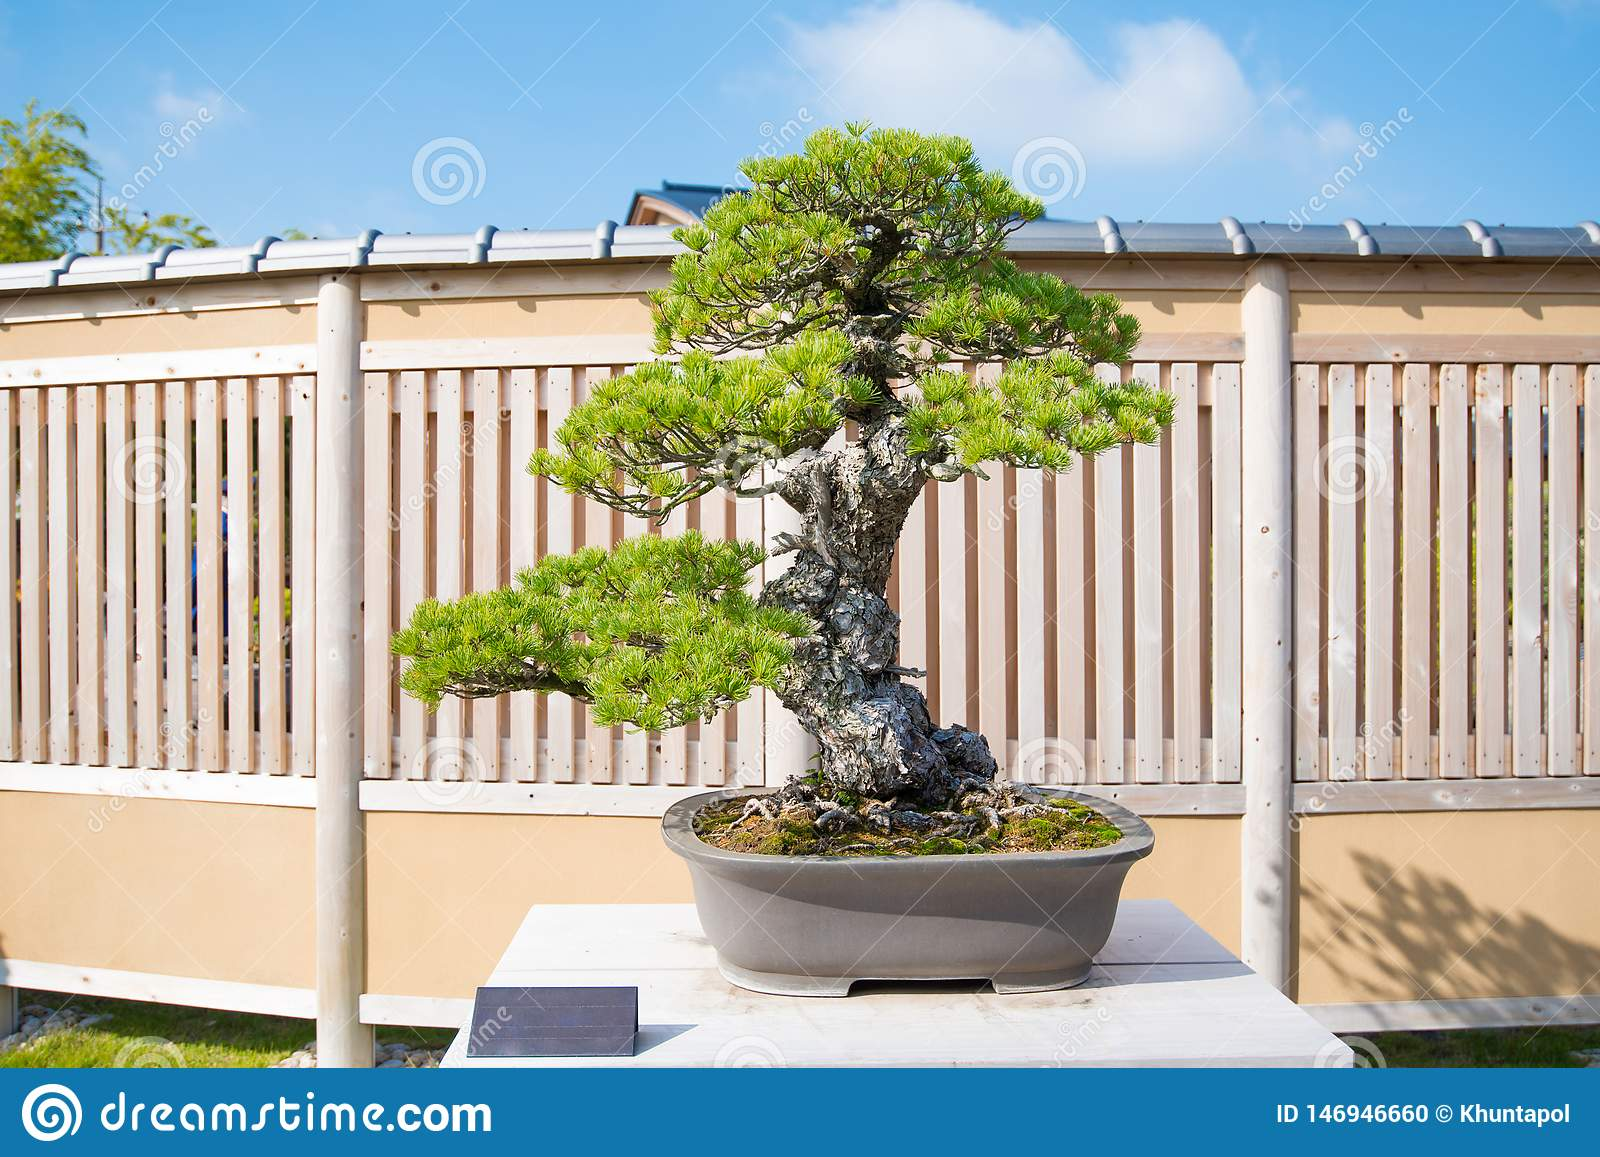 Japanese White Pine Bonsai Tree In Omiya Bonsai Village Stock Photo Image Of Maple Cultivated 146946660